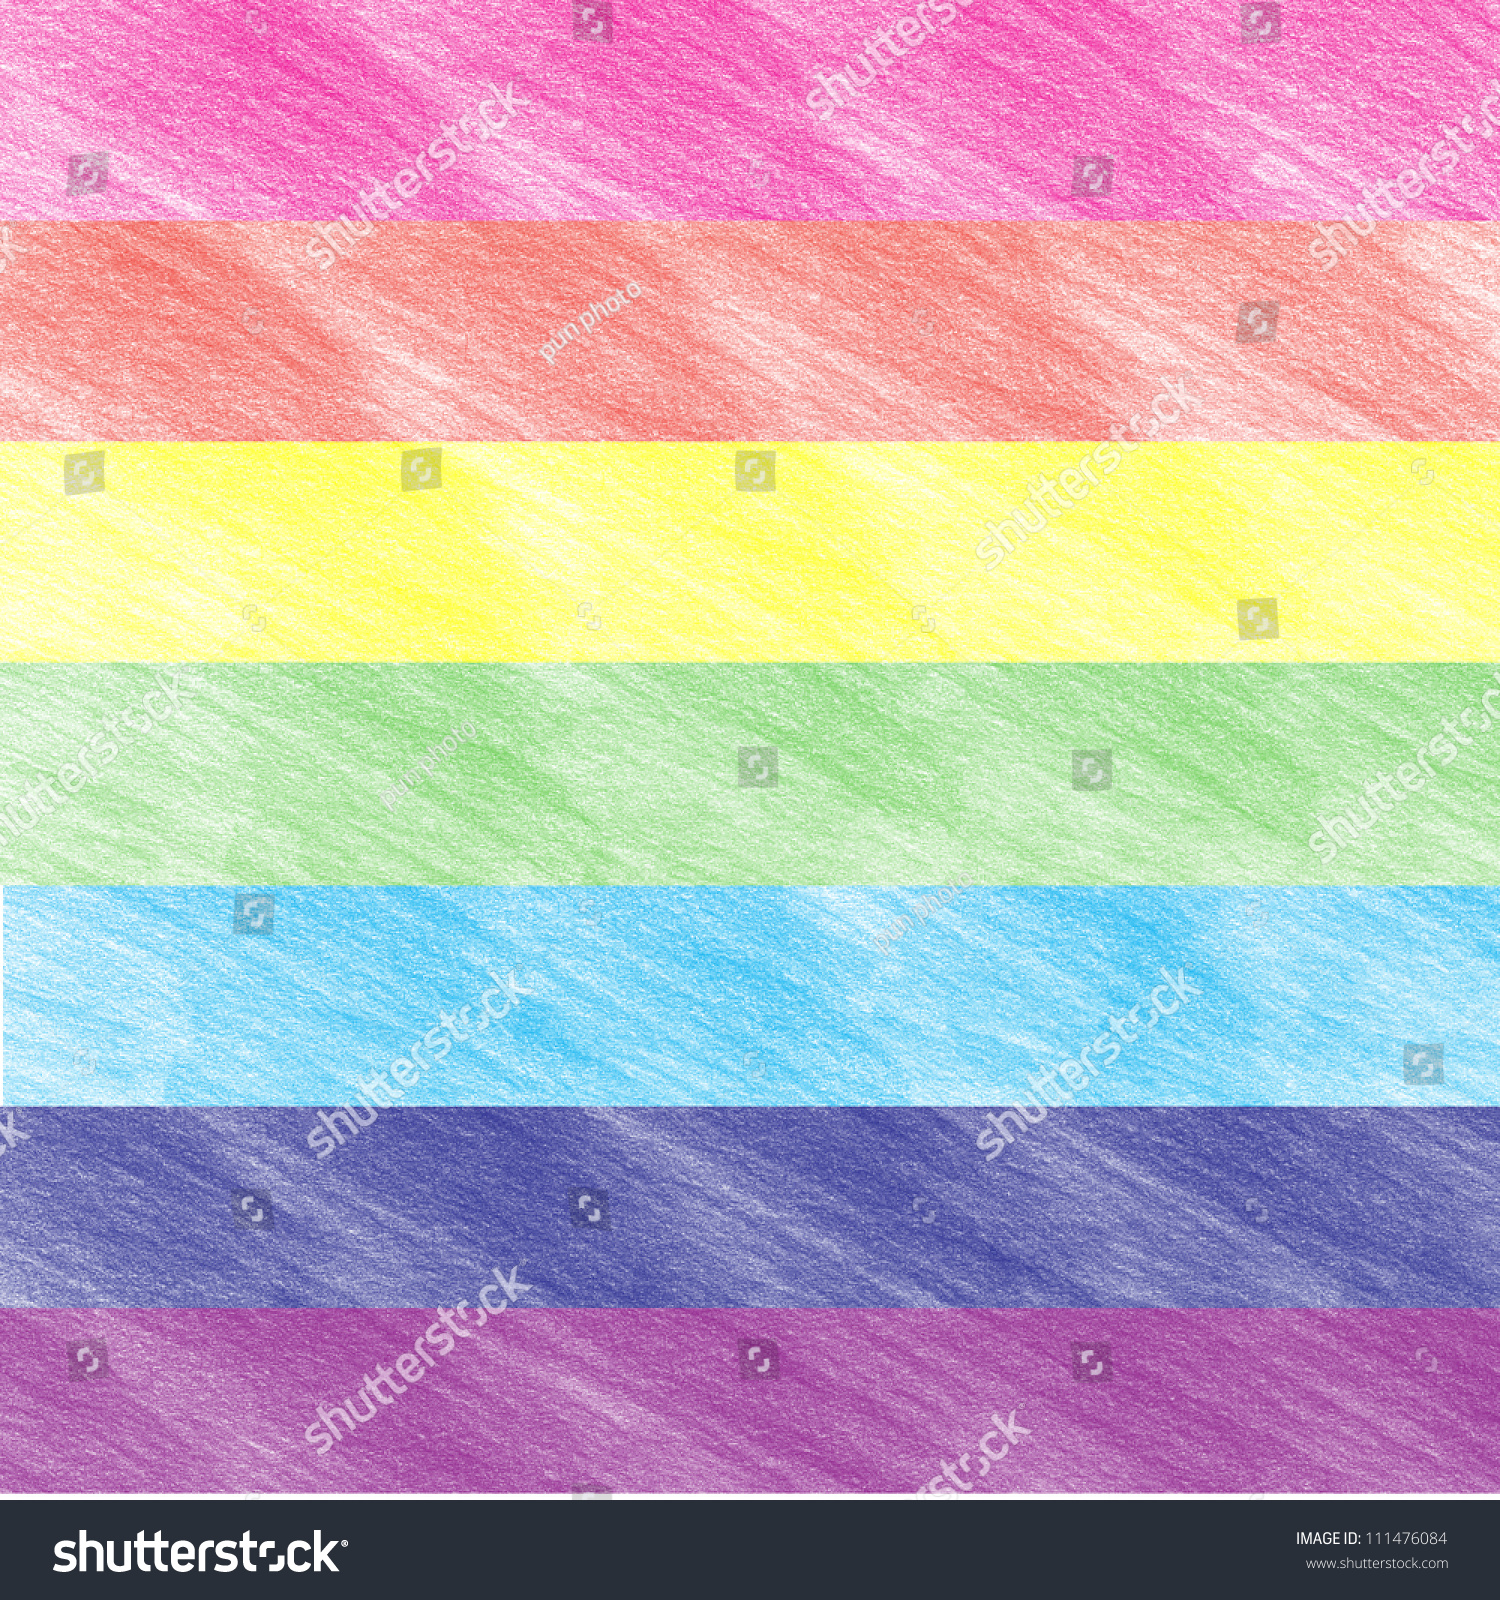 Childs Rainbow Crayon Drawing Handdrawn Colored Stock Photo Edit Now 111476084